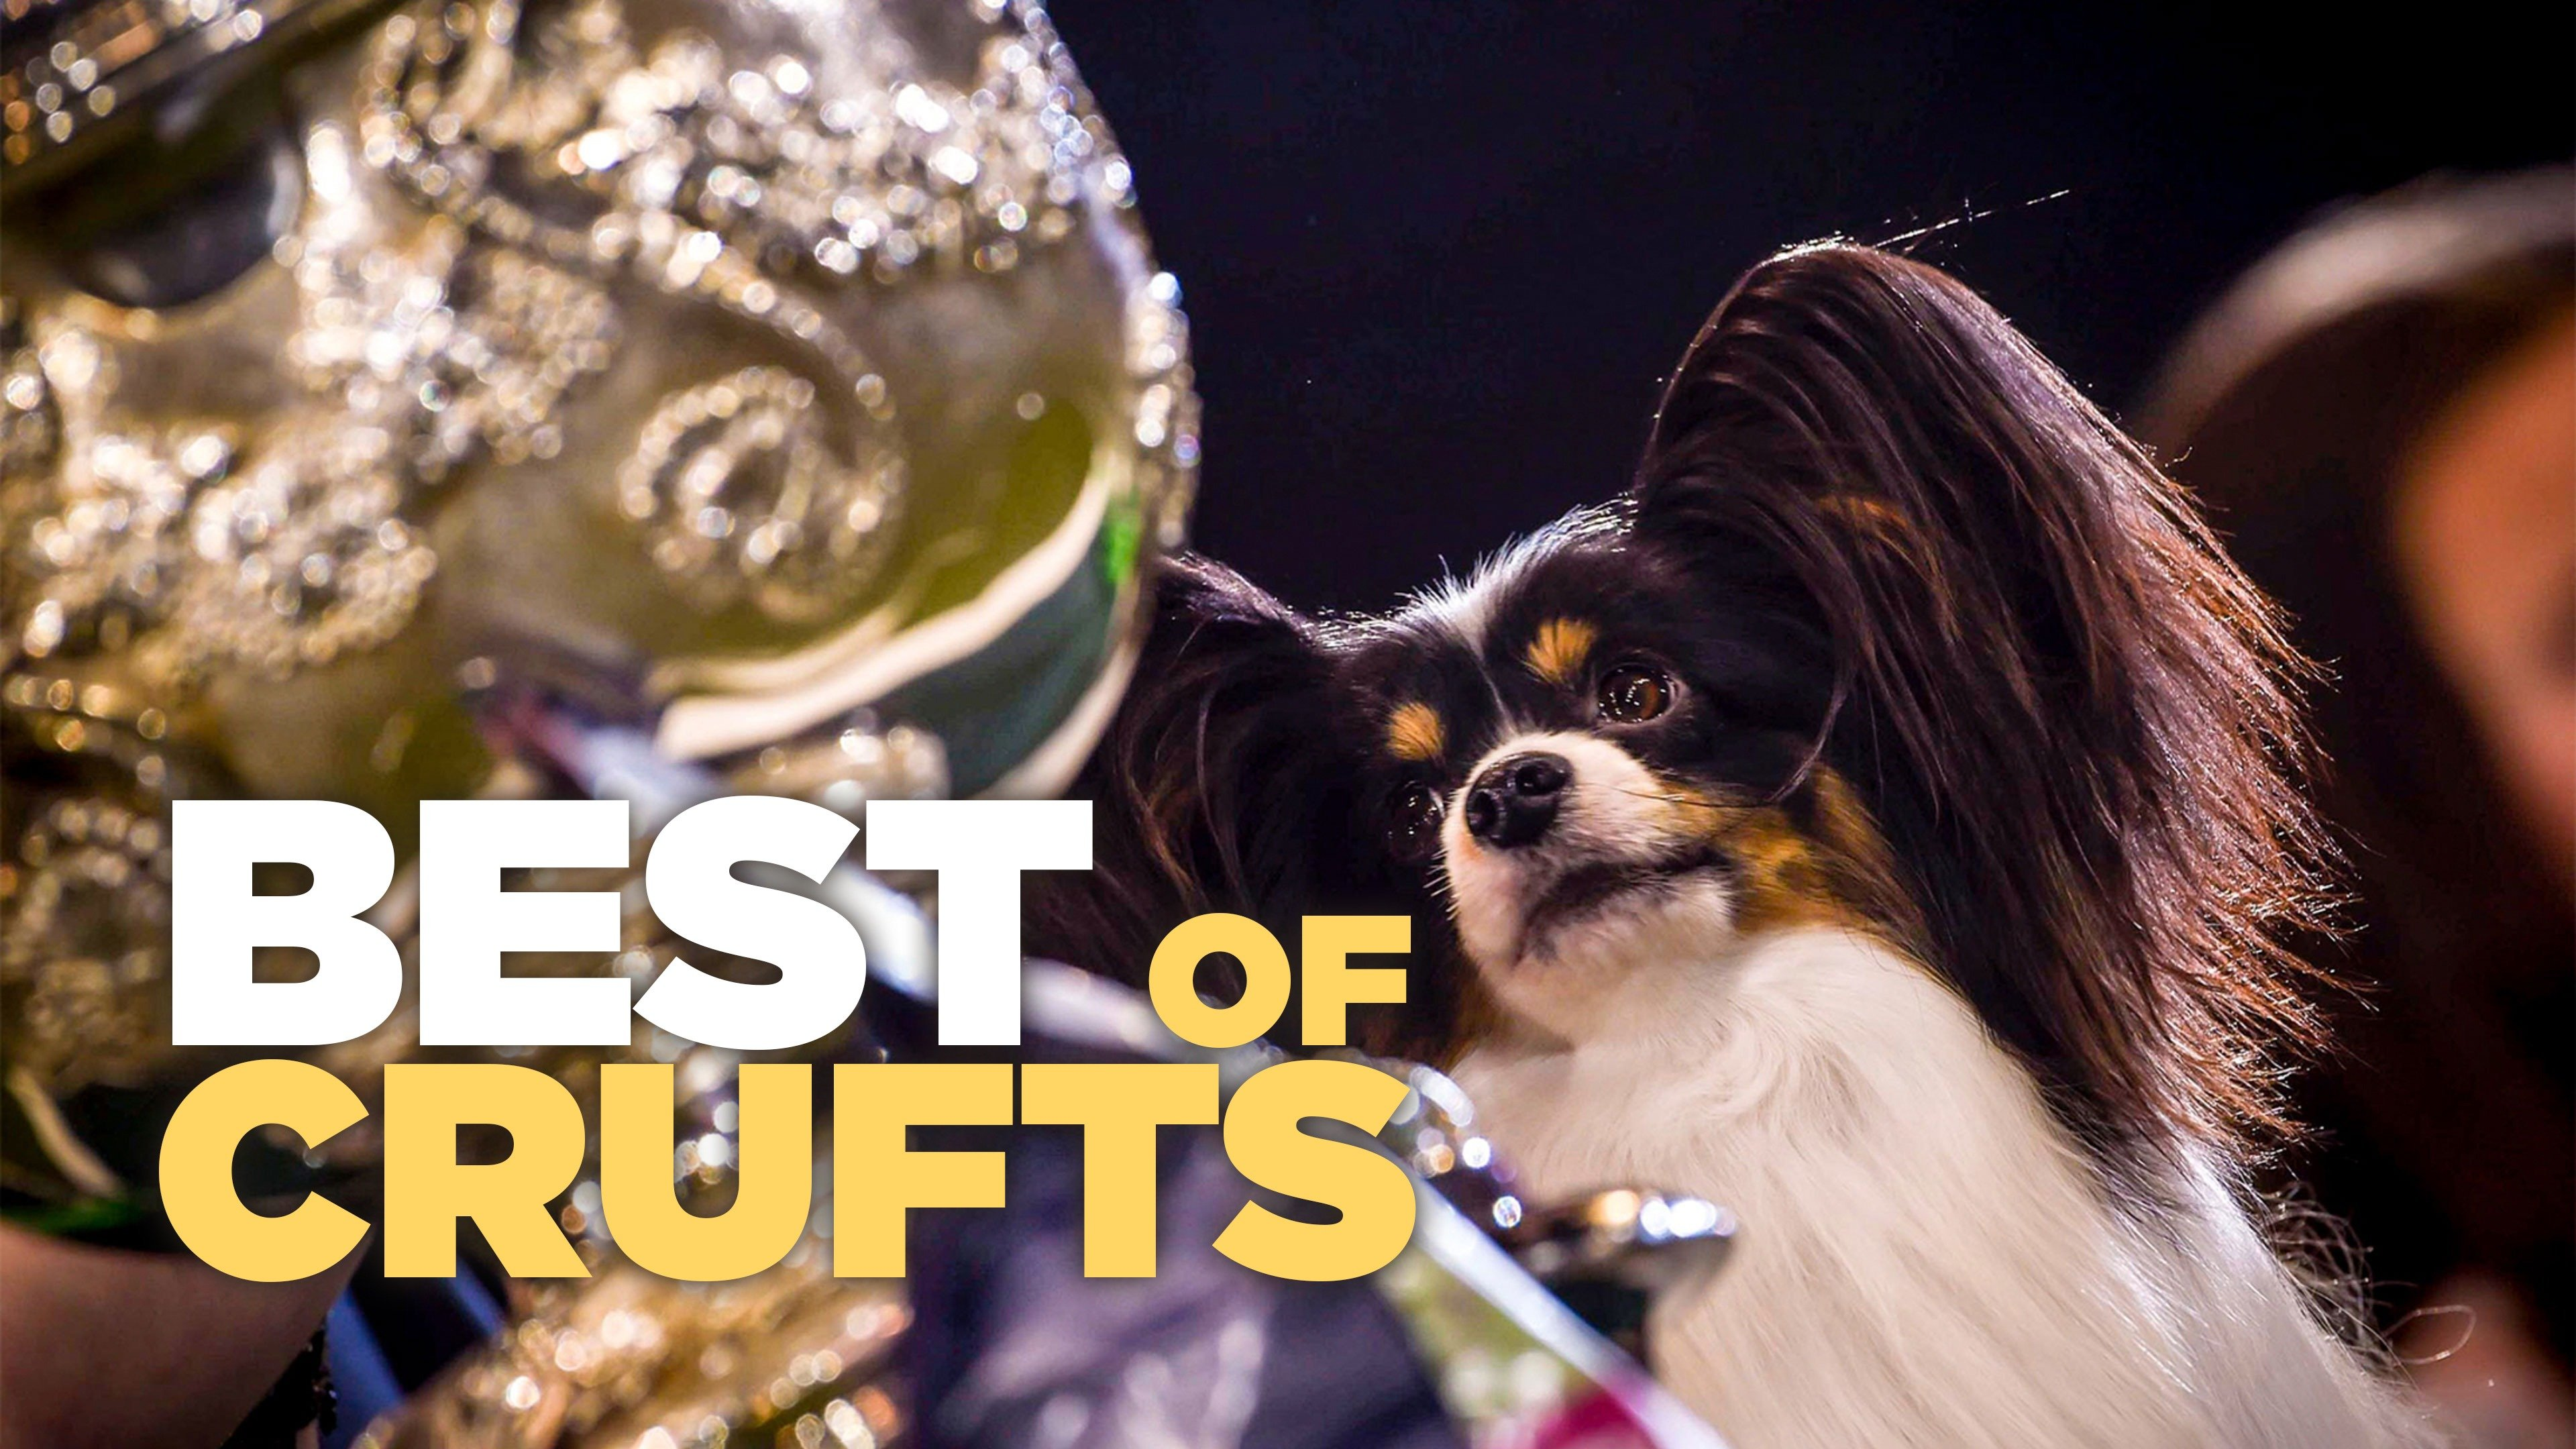 Best of Crufts